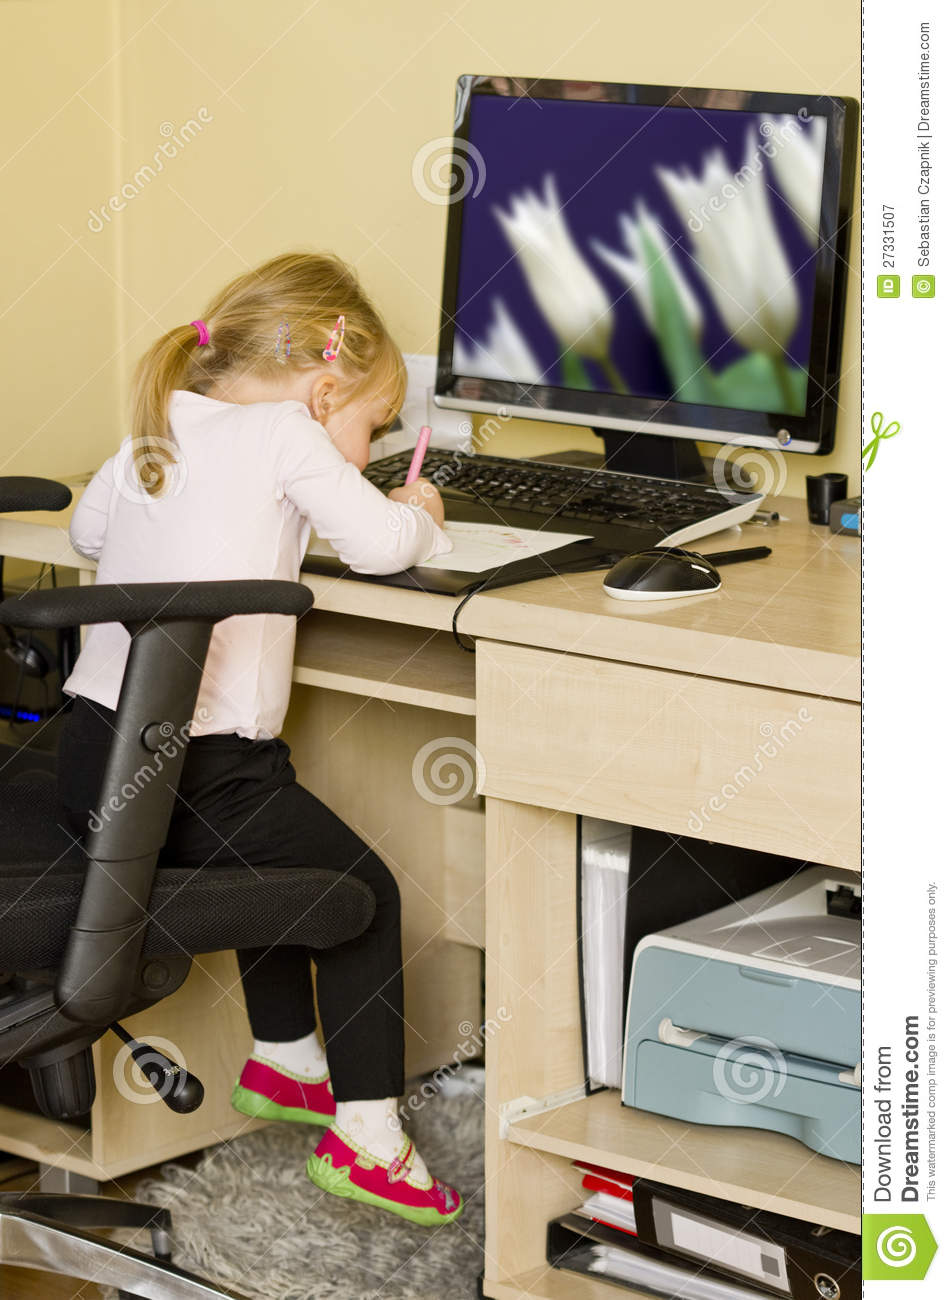 Little girl at computer desk royalty free stock photography image 27331507 - Desk girl image in ...